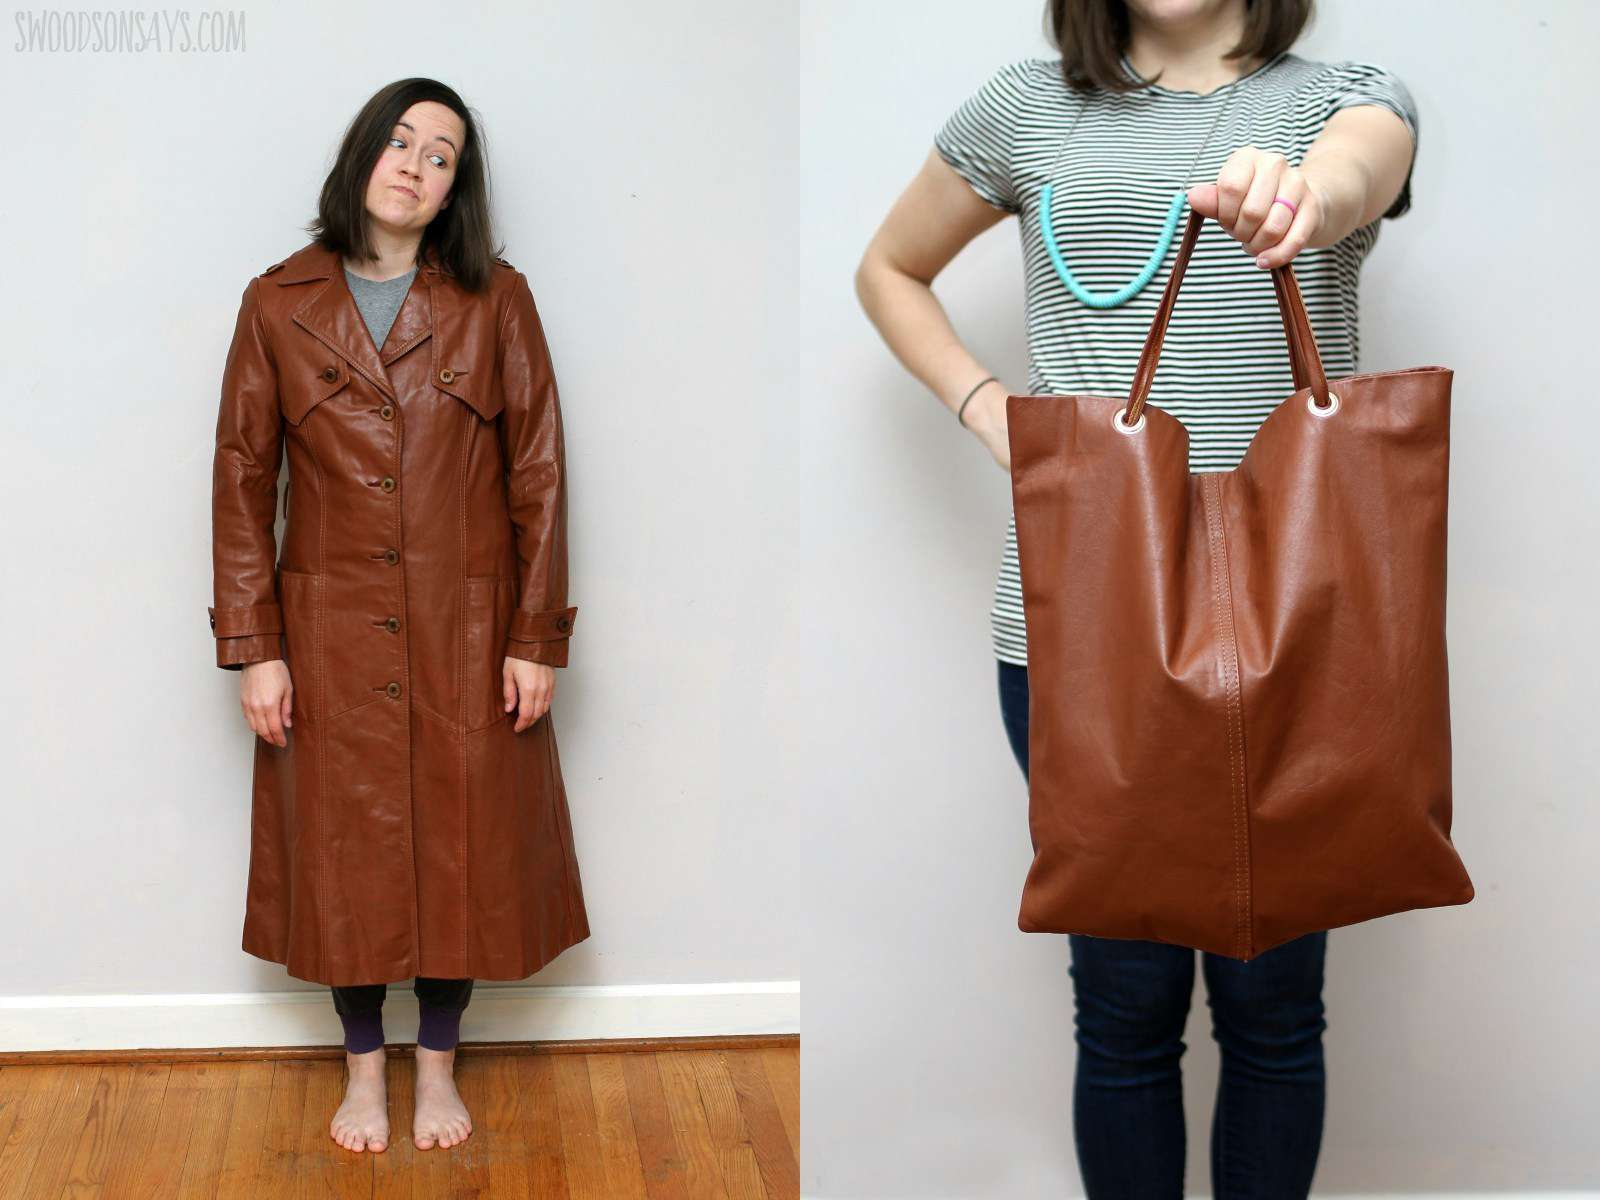 DIY Leather Tote Bag Made From a Thrifted Leather Coat